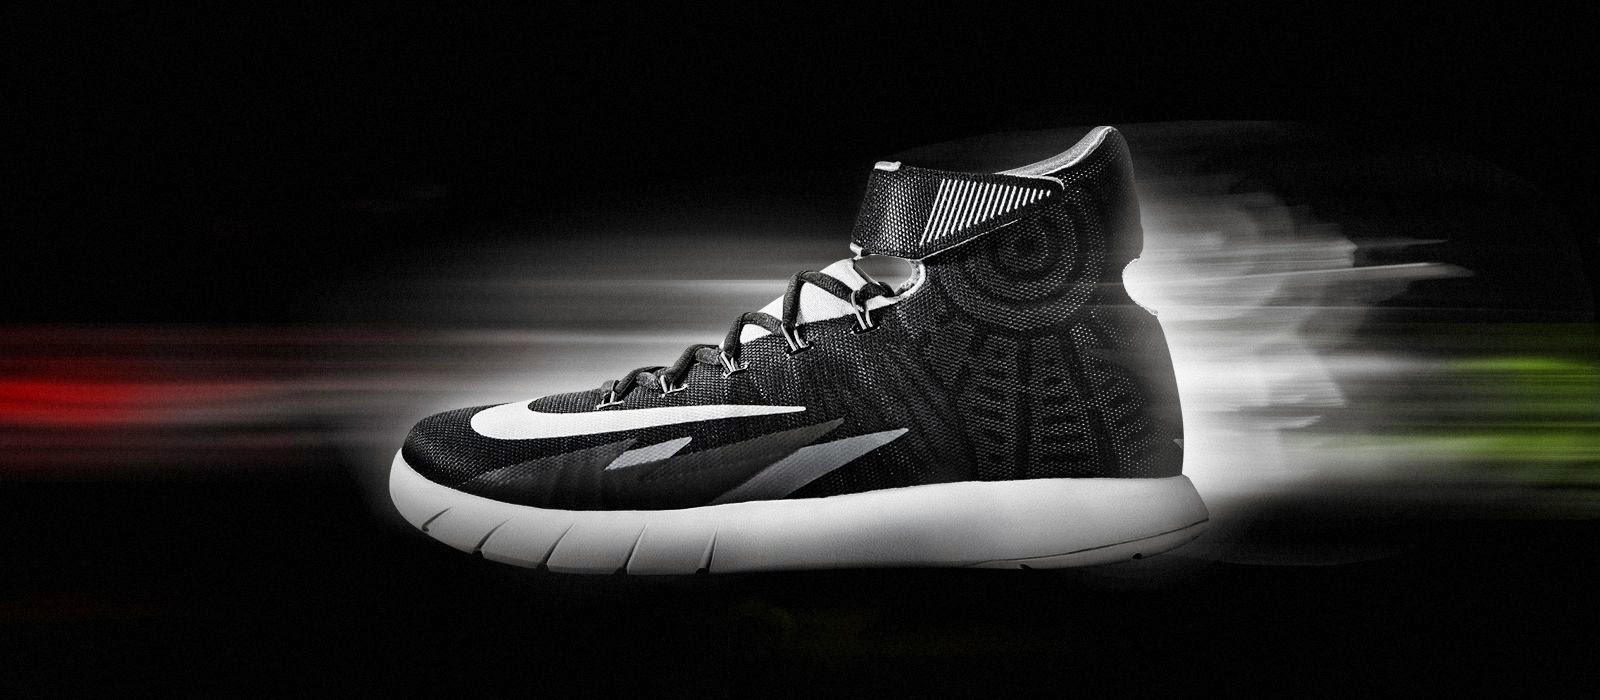 Nike zoom hyperrev hd wallpaper - Nike wallpaper hd ...